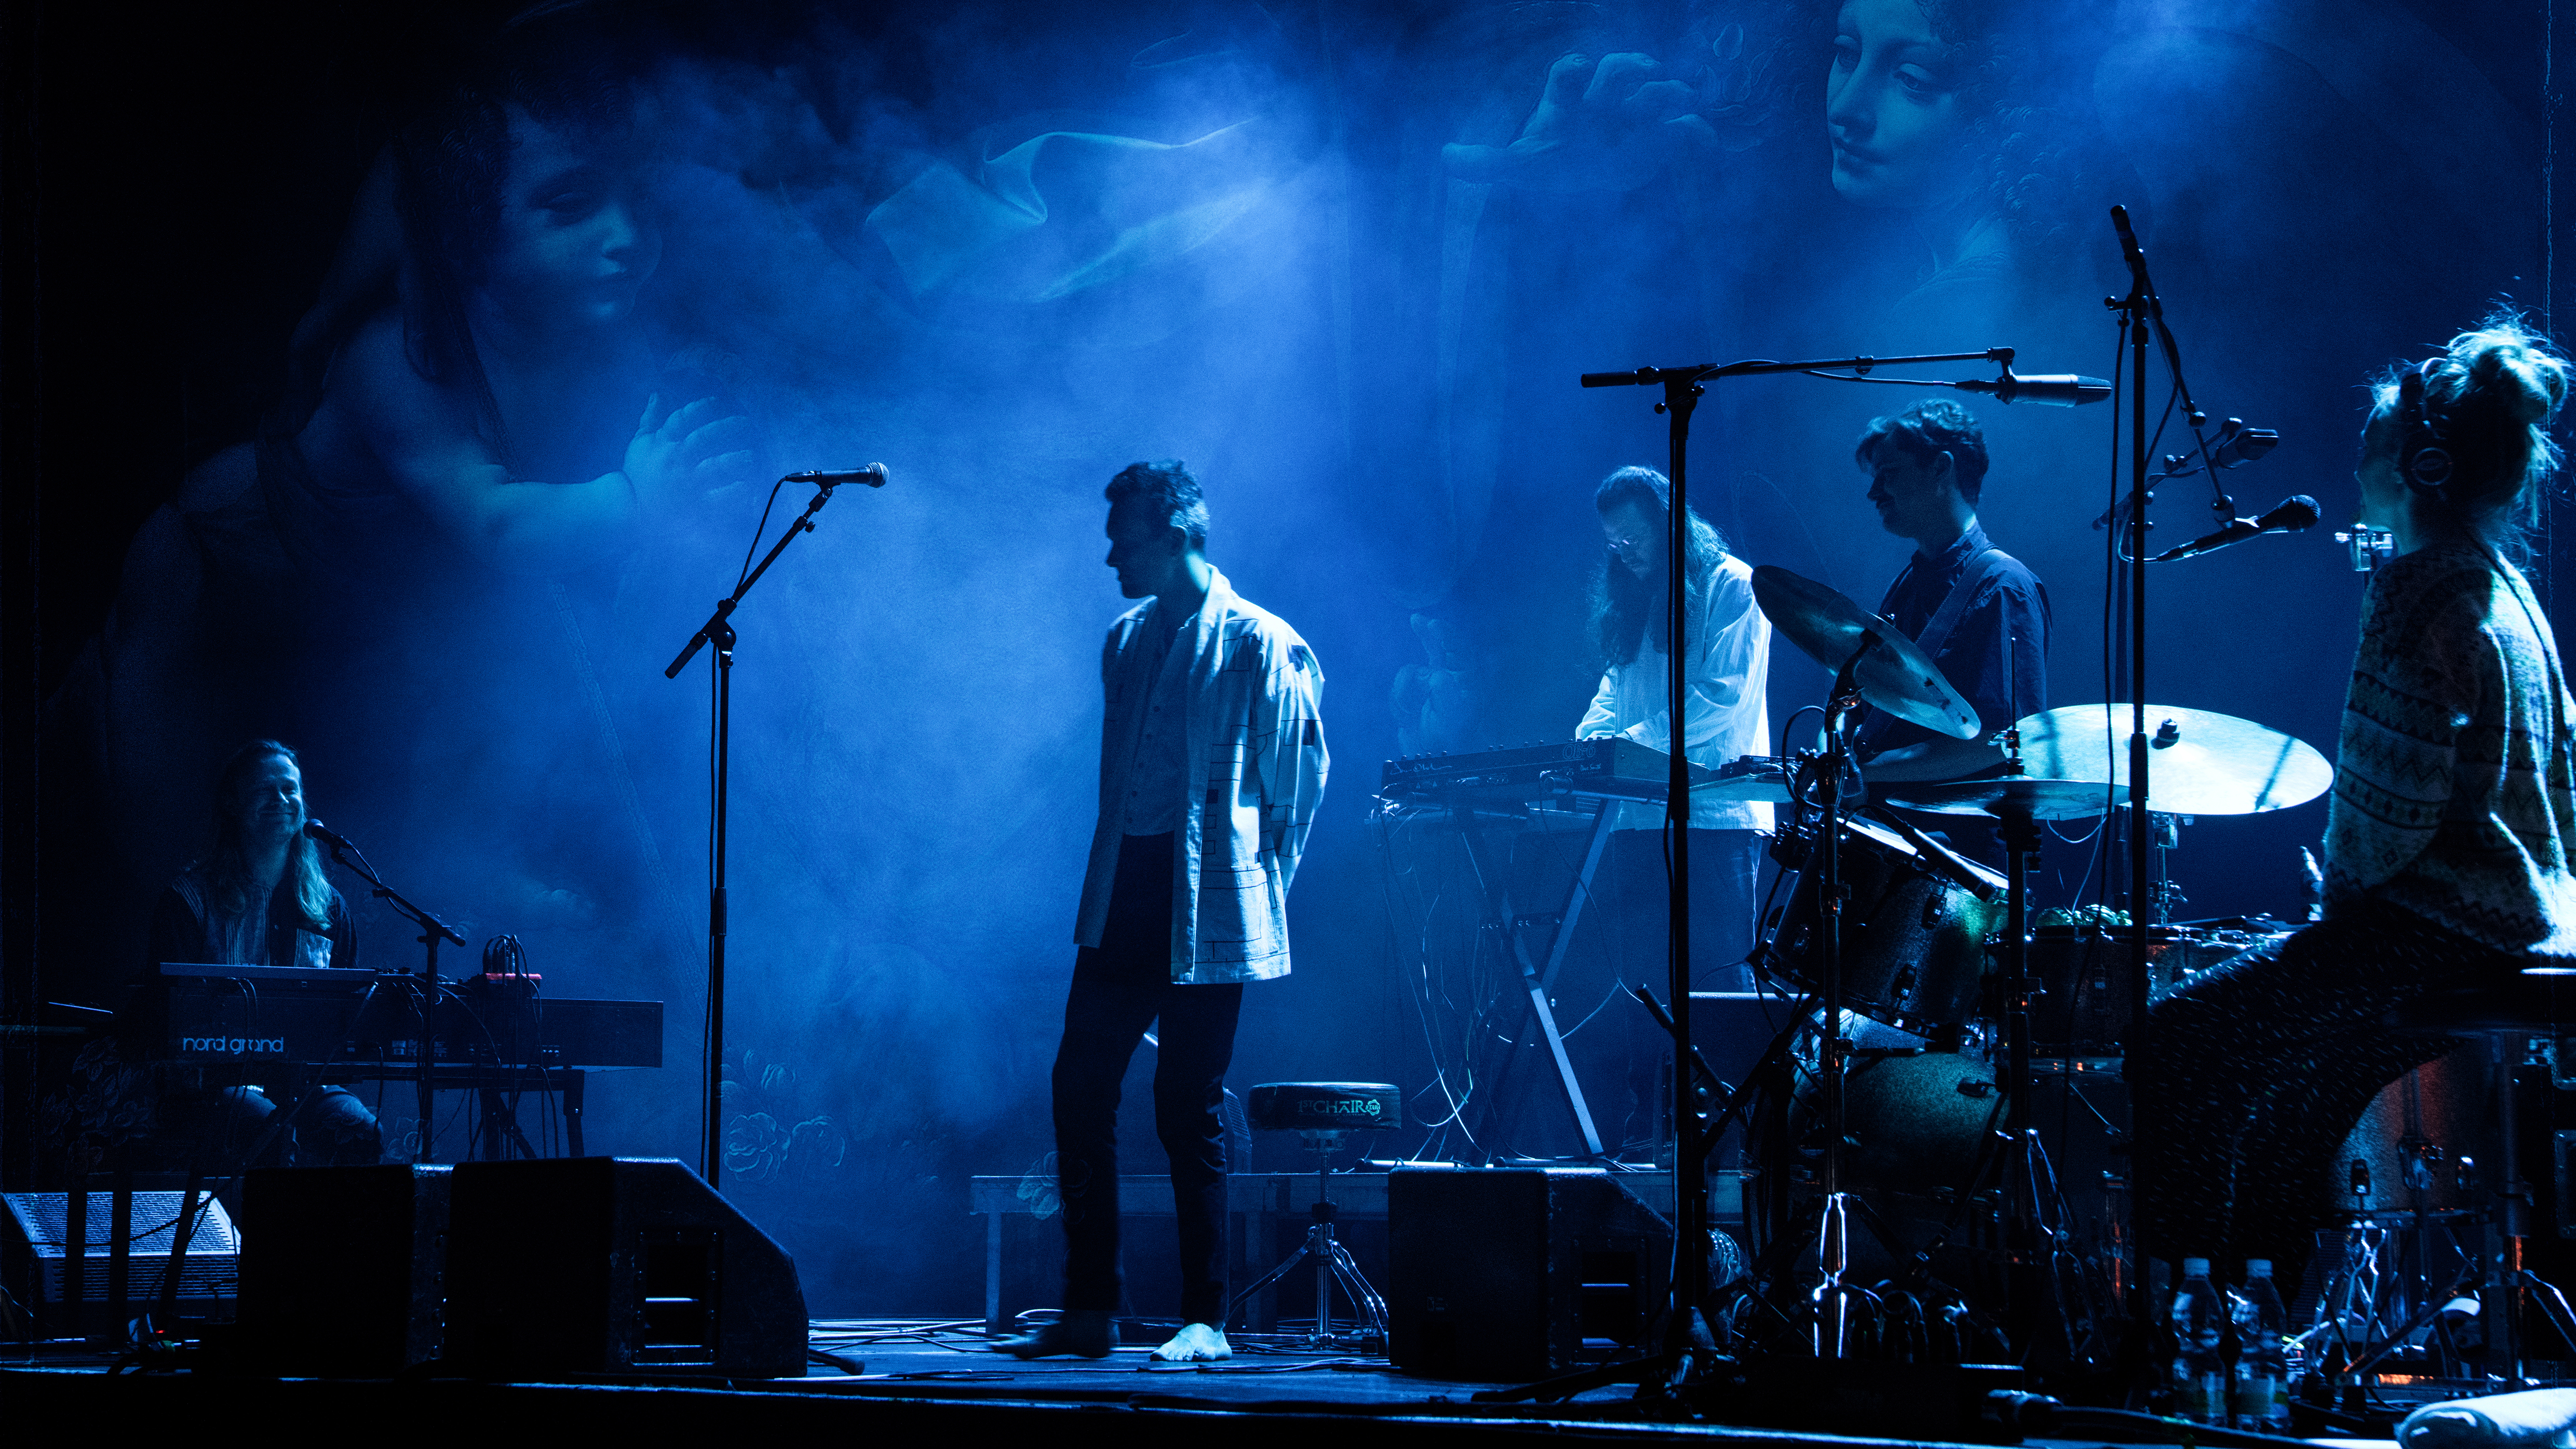 Efterklang at Planet TT